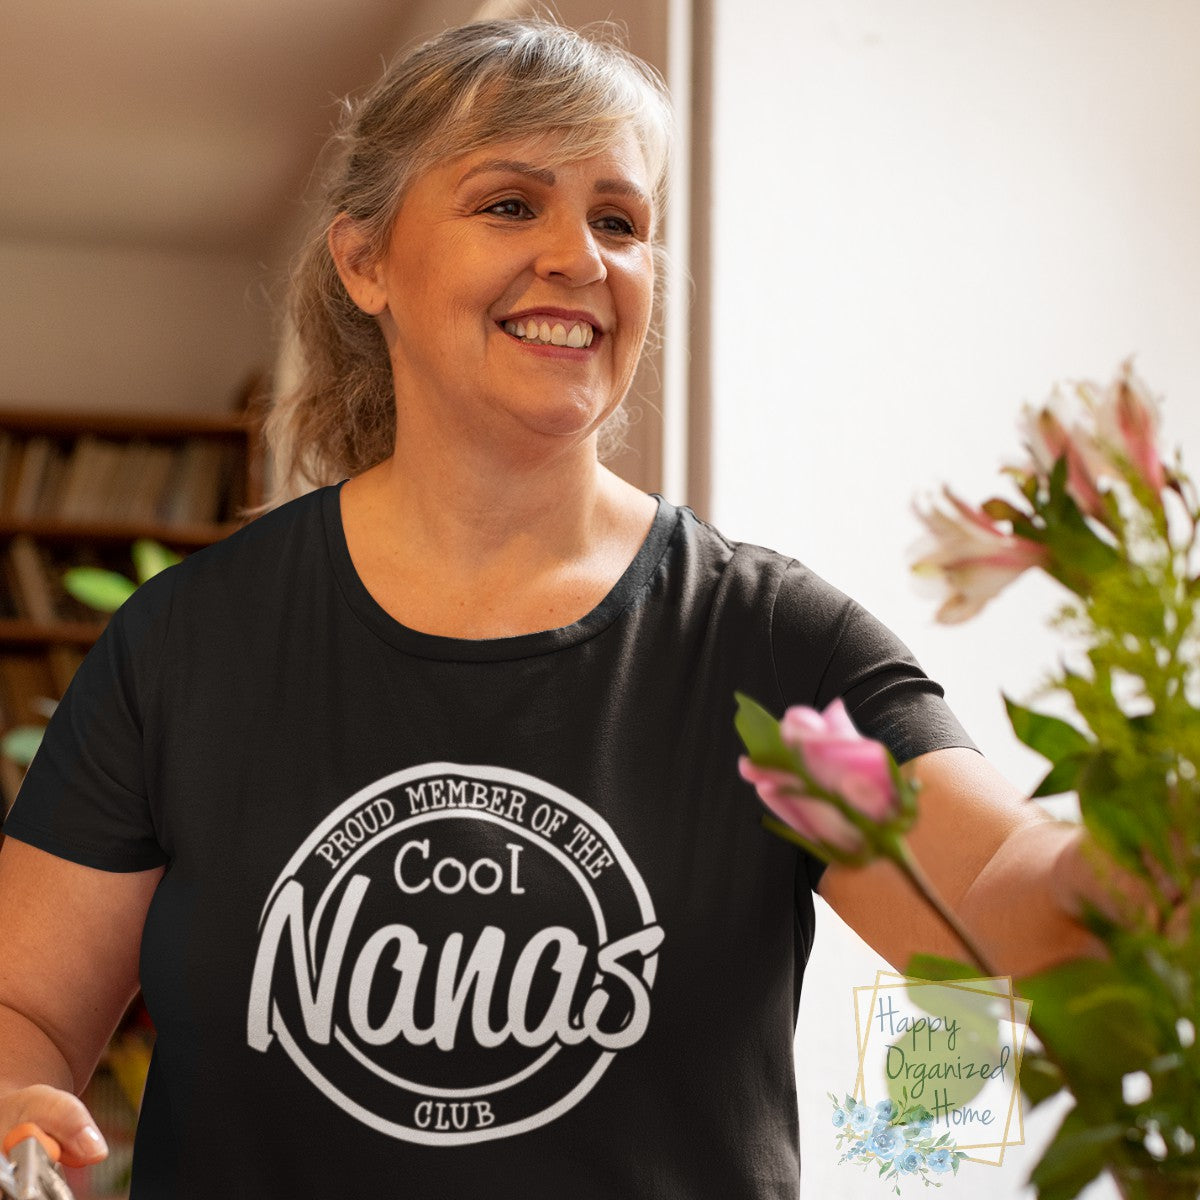 Proud Member of the Cool Nanas Club - Unisex Apparel